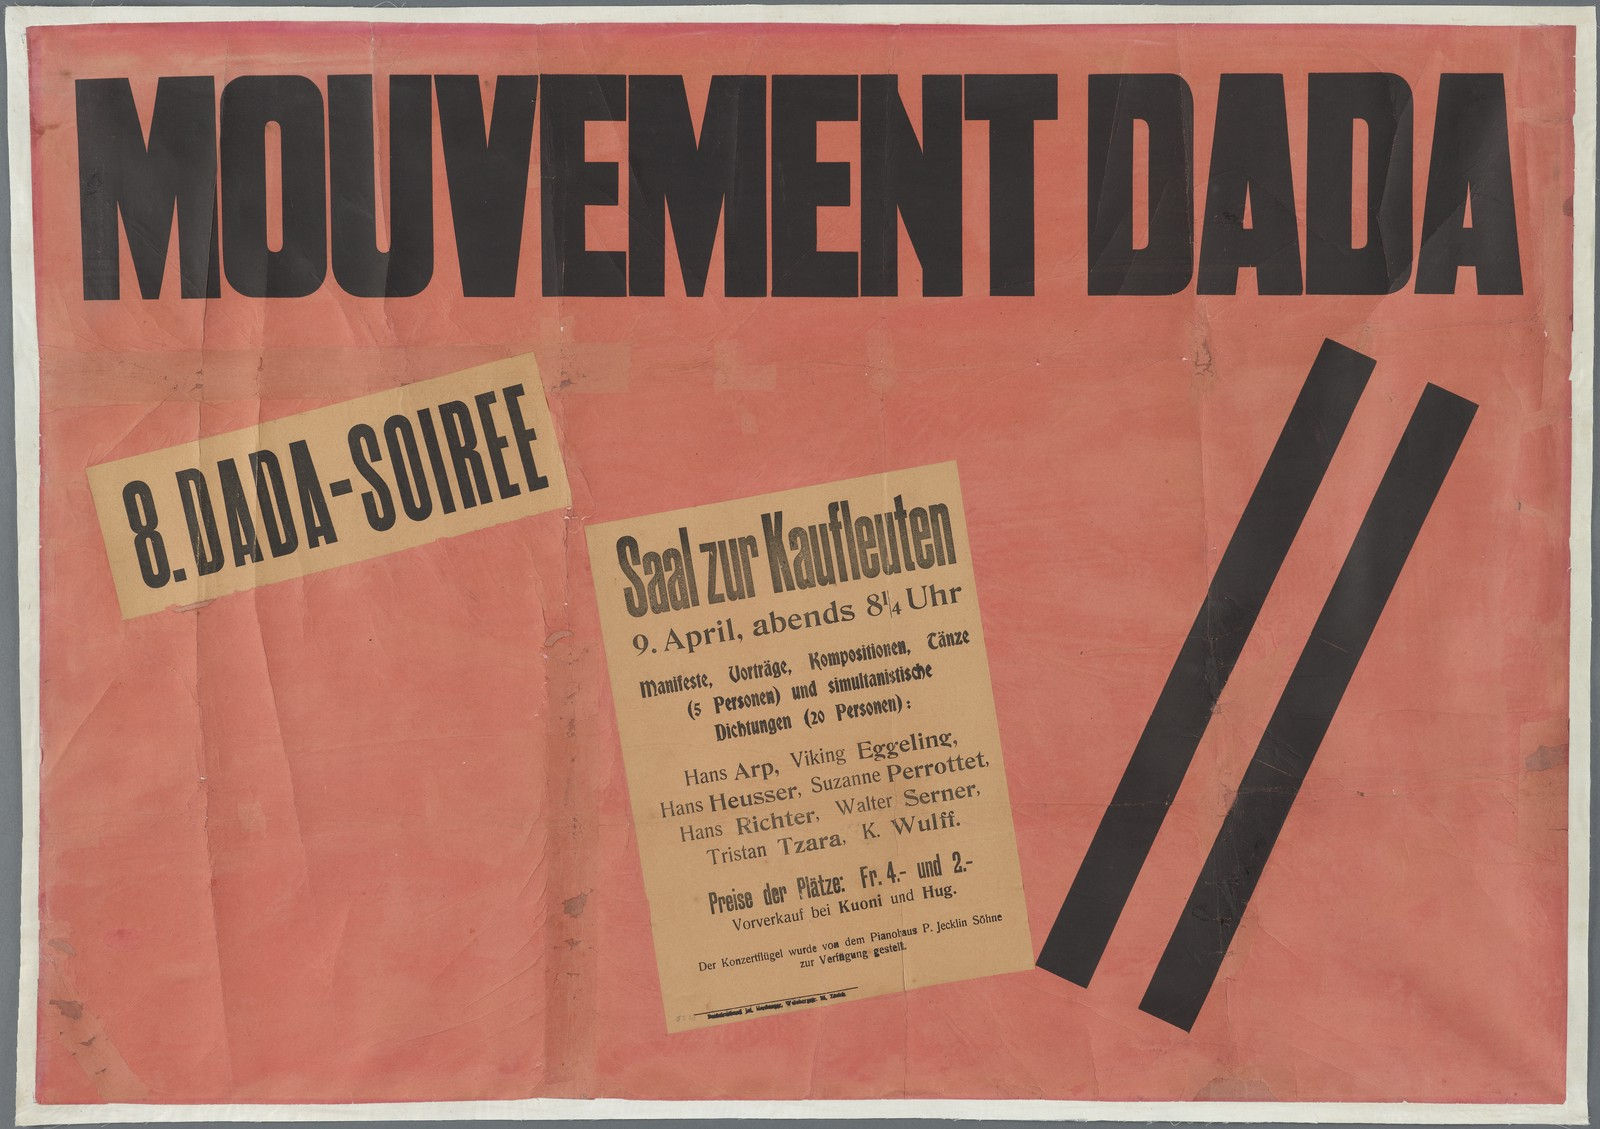 image of a poster for the Dada movement